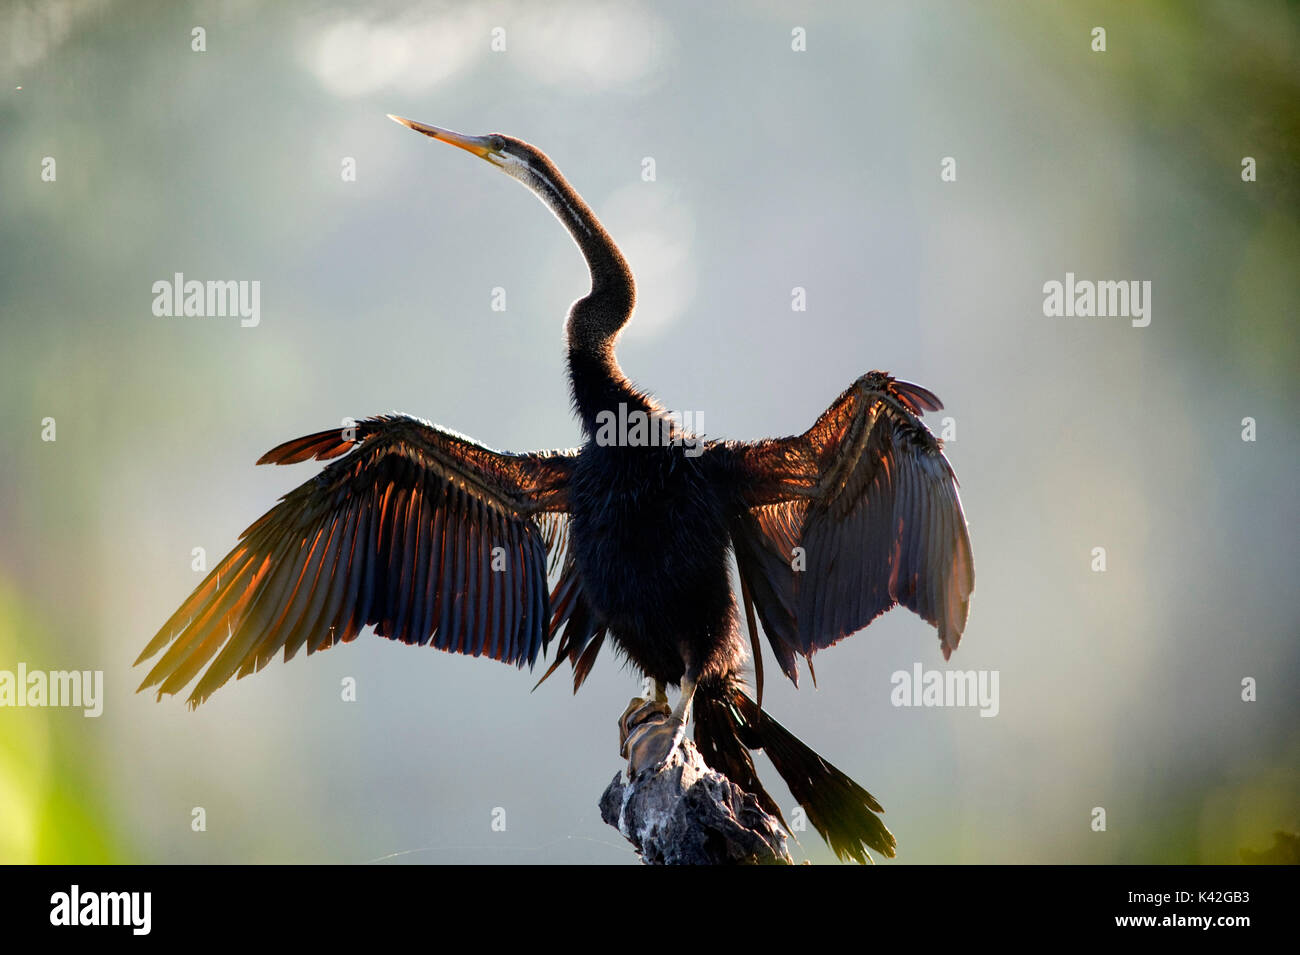 Indian or Asian Darter, Anhinga melanogaster, drying wings, Keoladeo National Park or Keoladeo Ghana National Park formerly known as the Bharatpur Bir - Stock Image